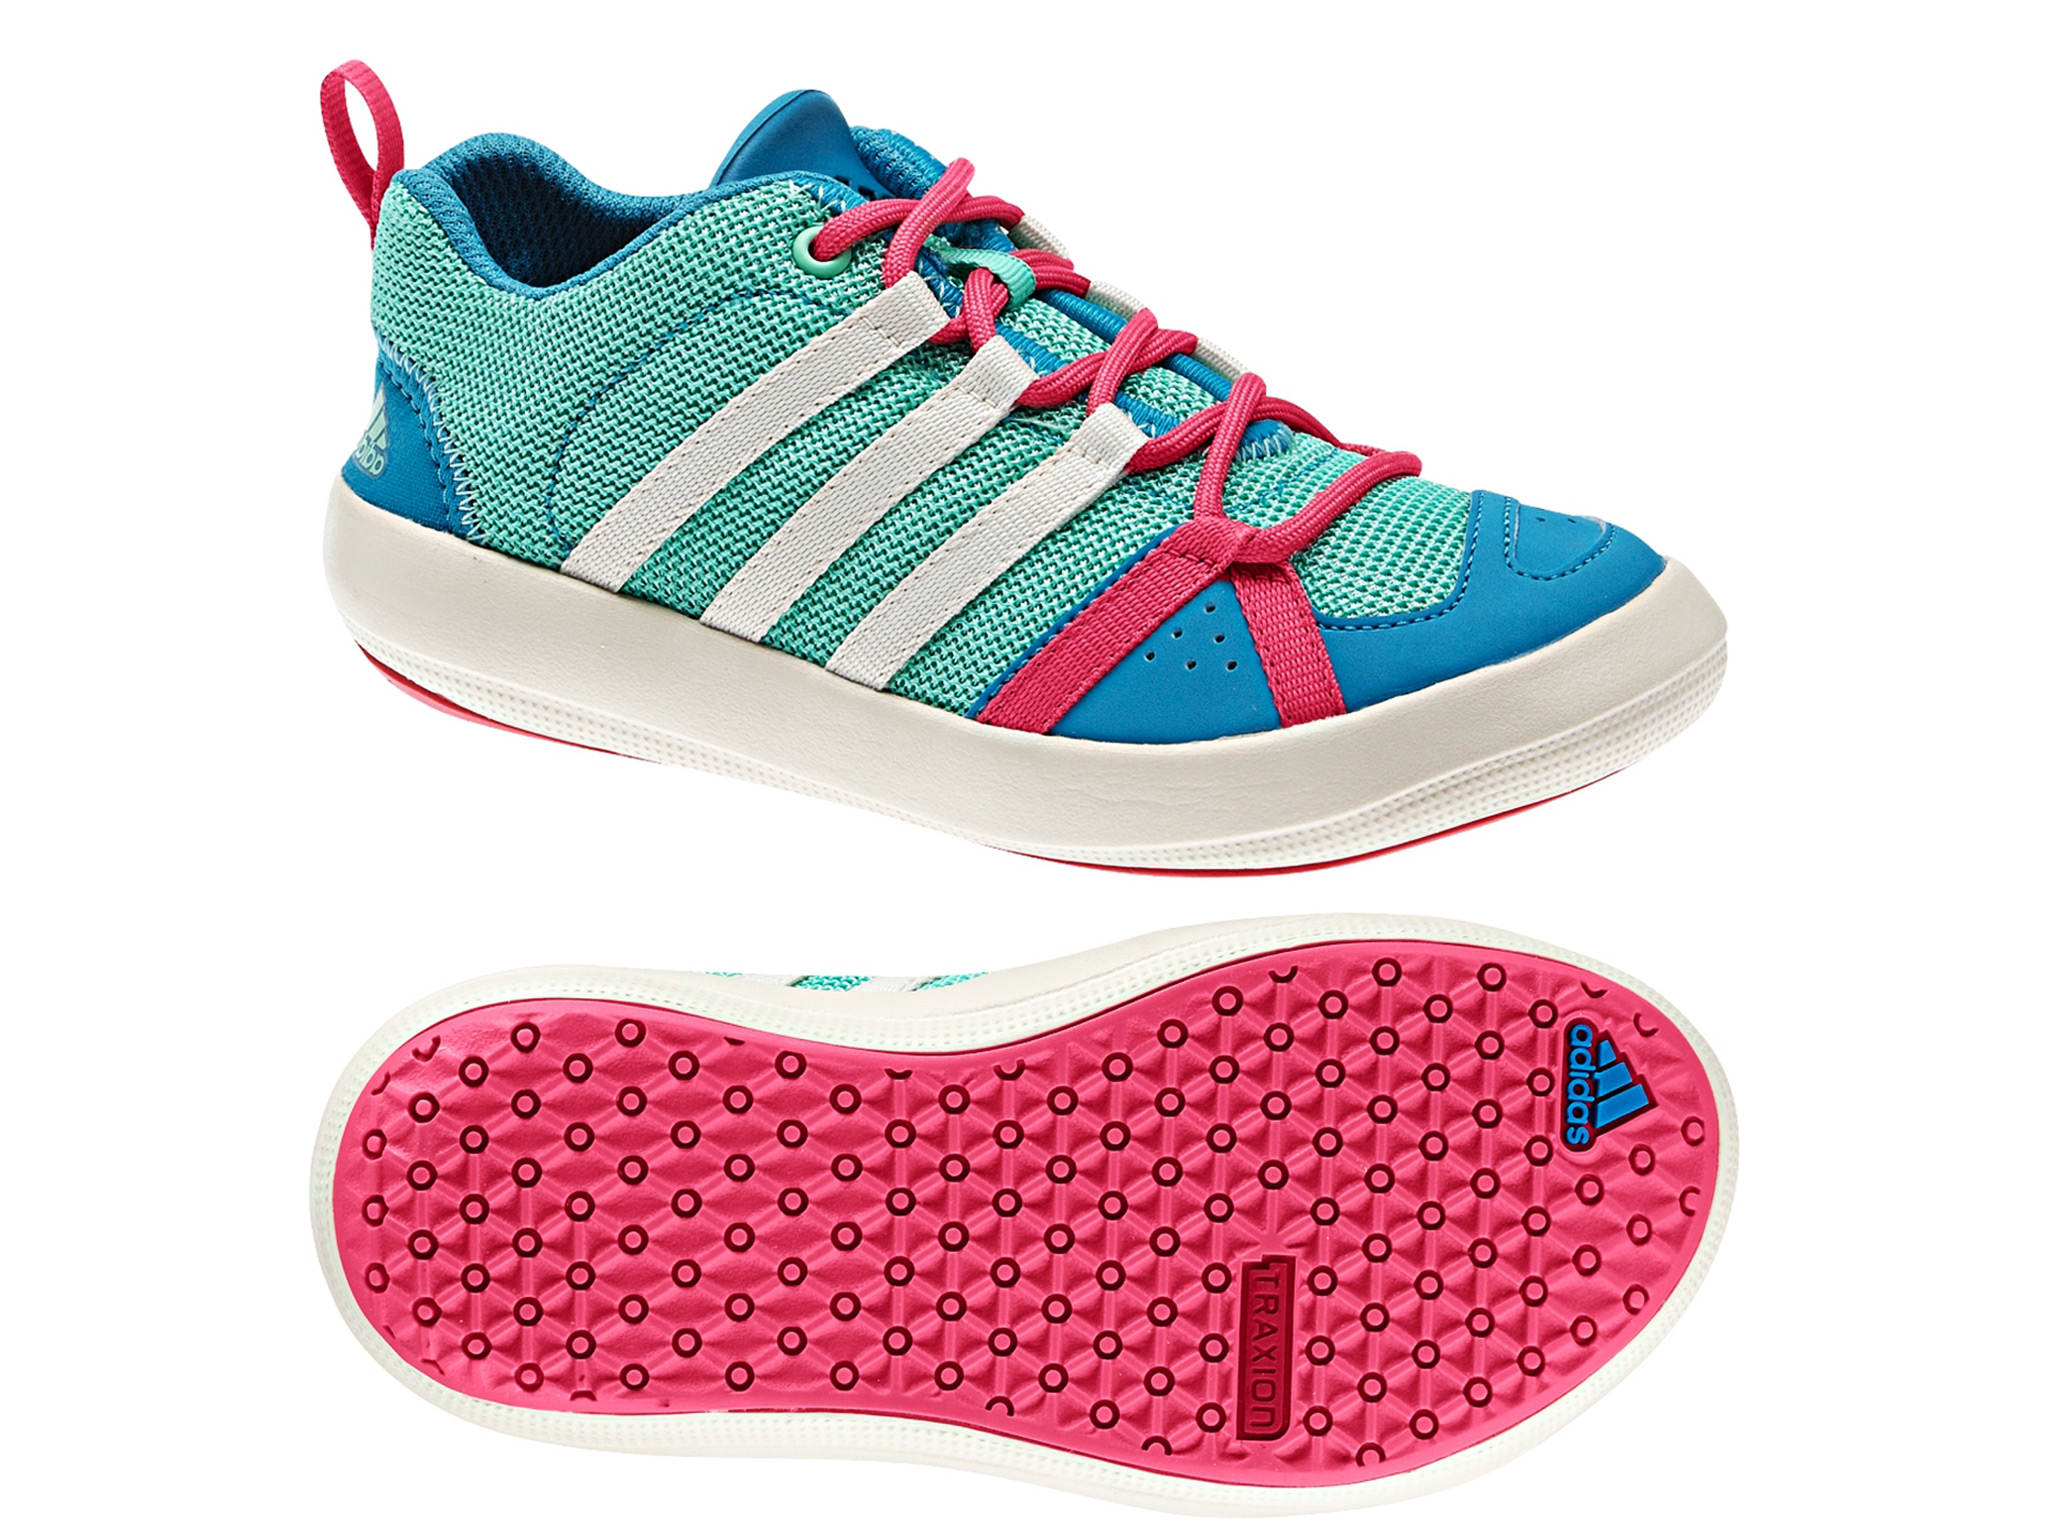 BUTY OUTDOOROWE Adidas Boat Lace K D66739 39,5